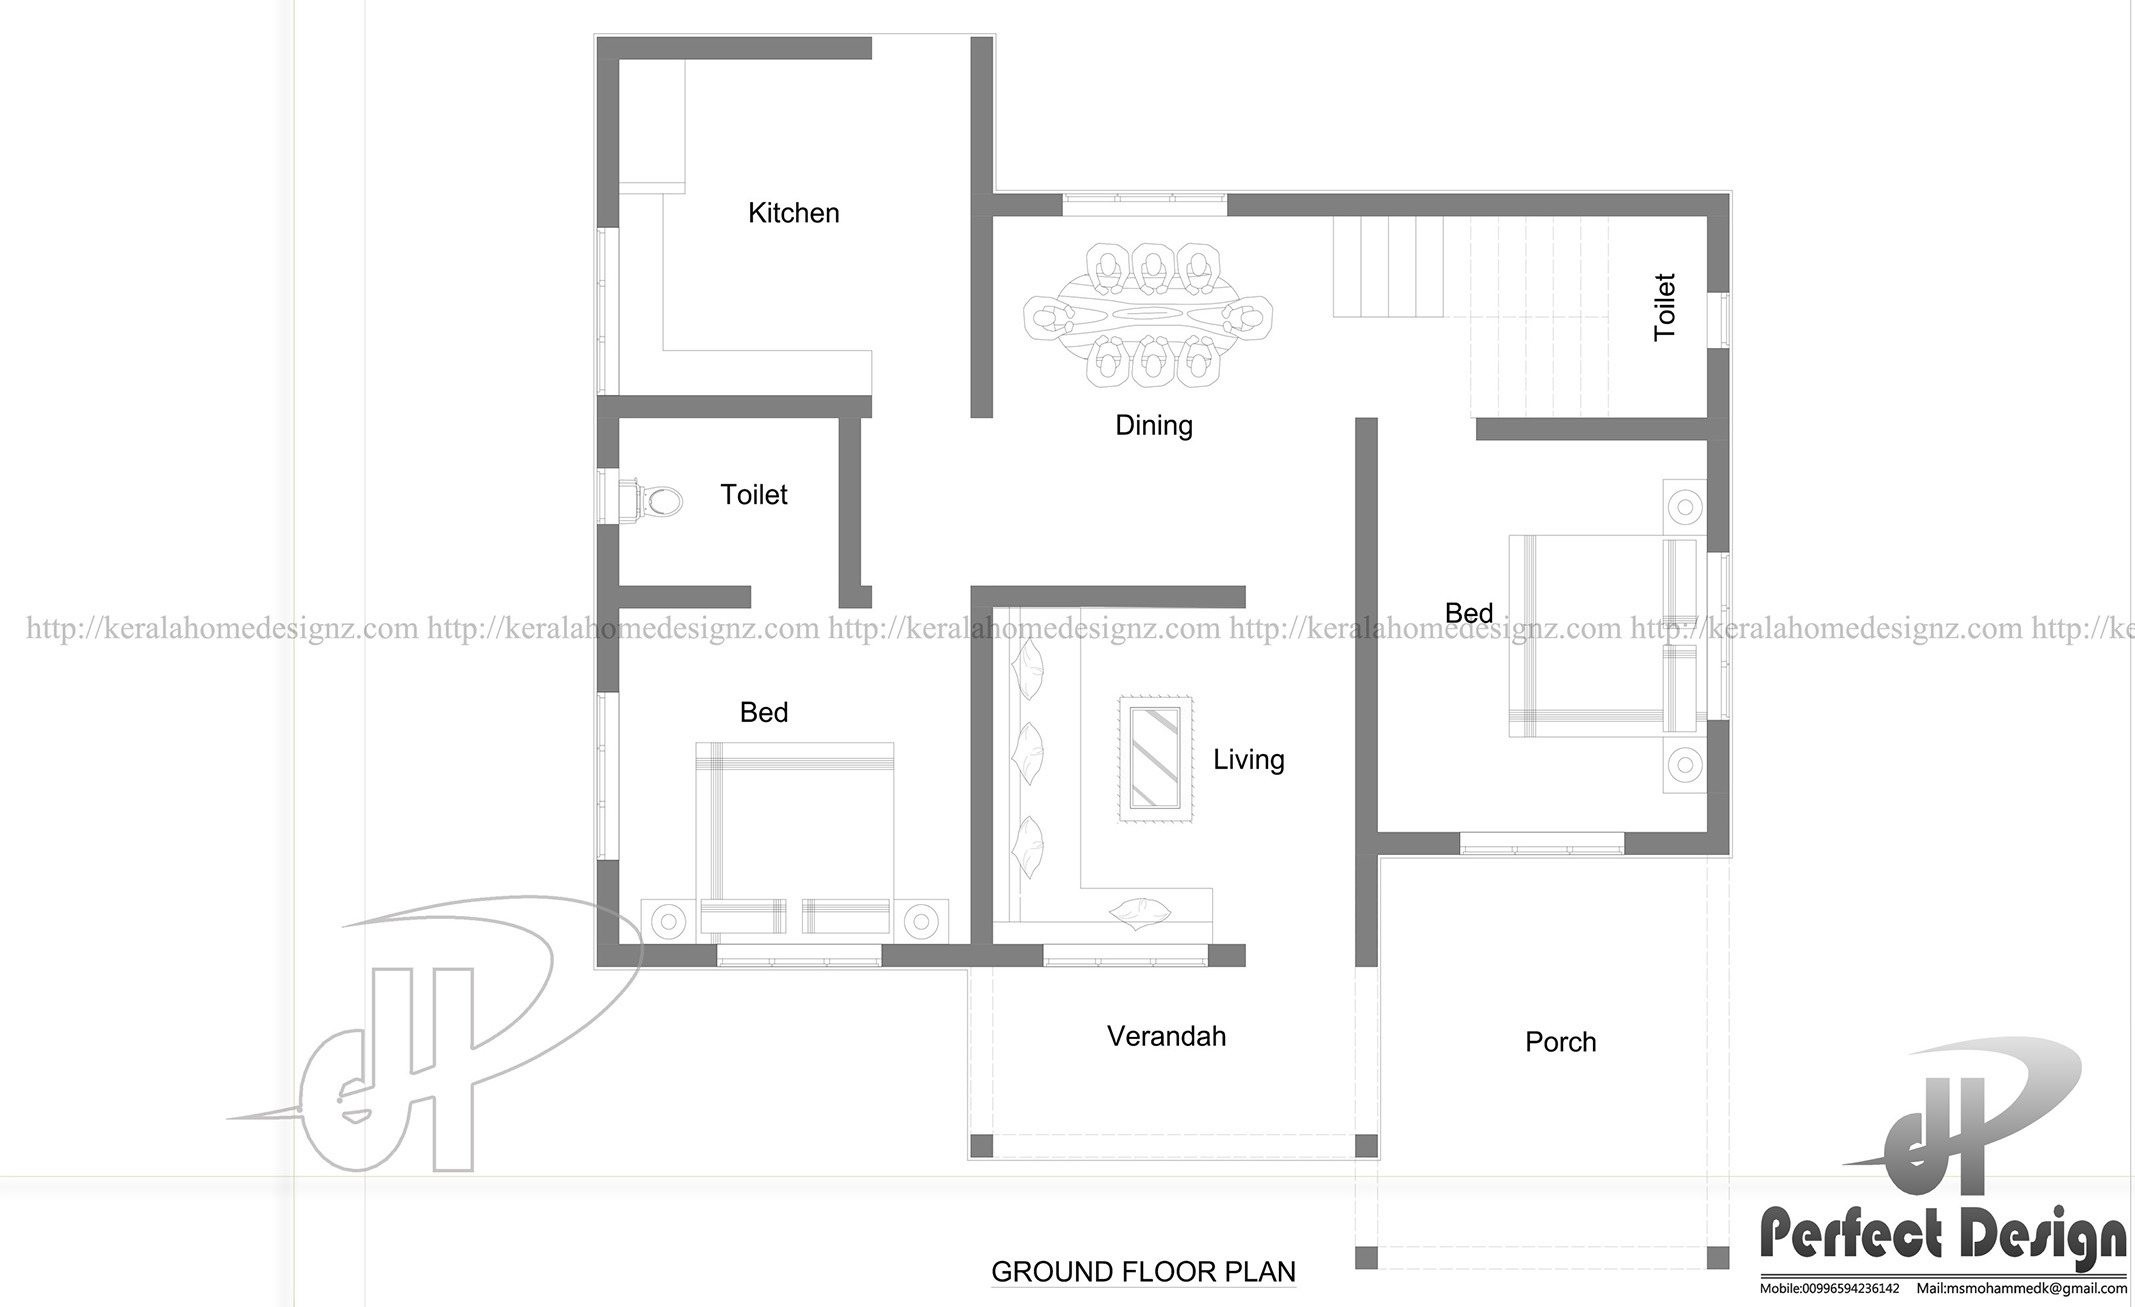 862 sq ft single floor home design kerala home design Ground floor house plans